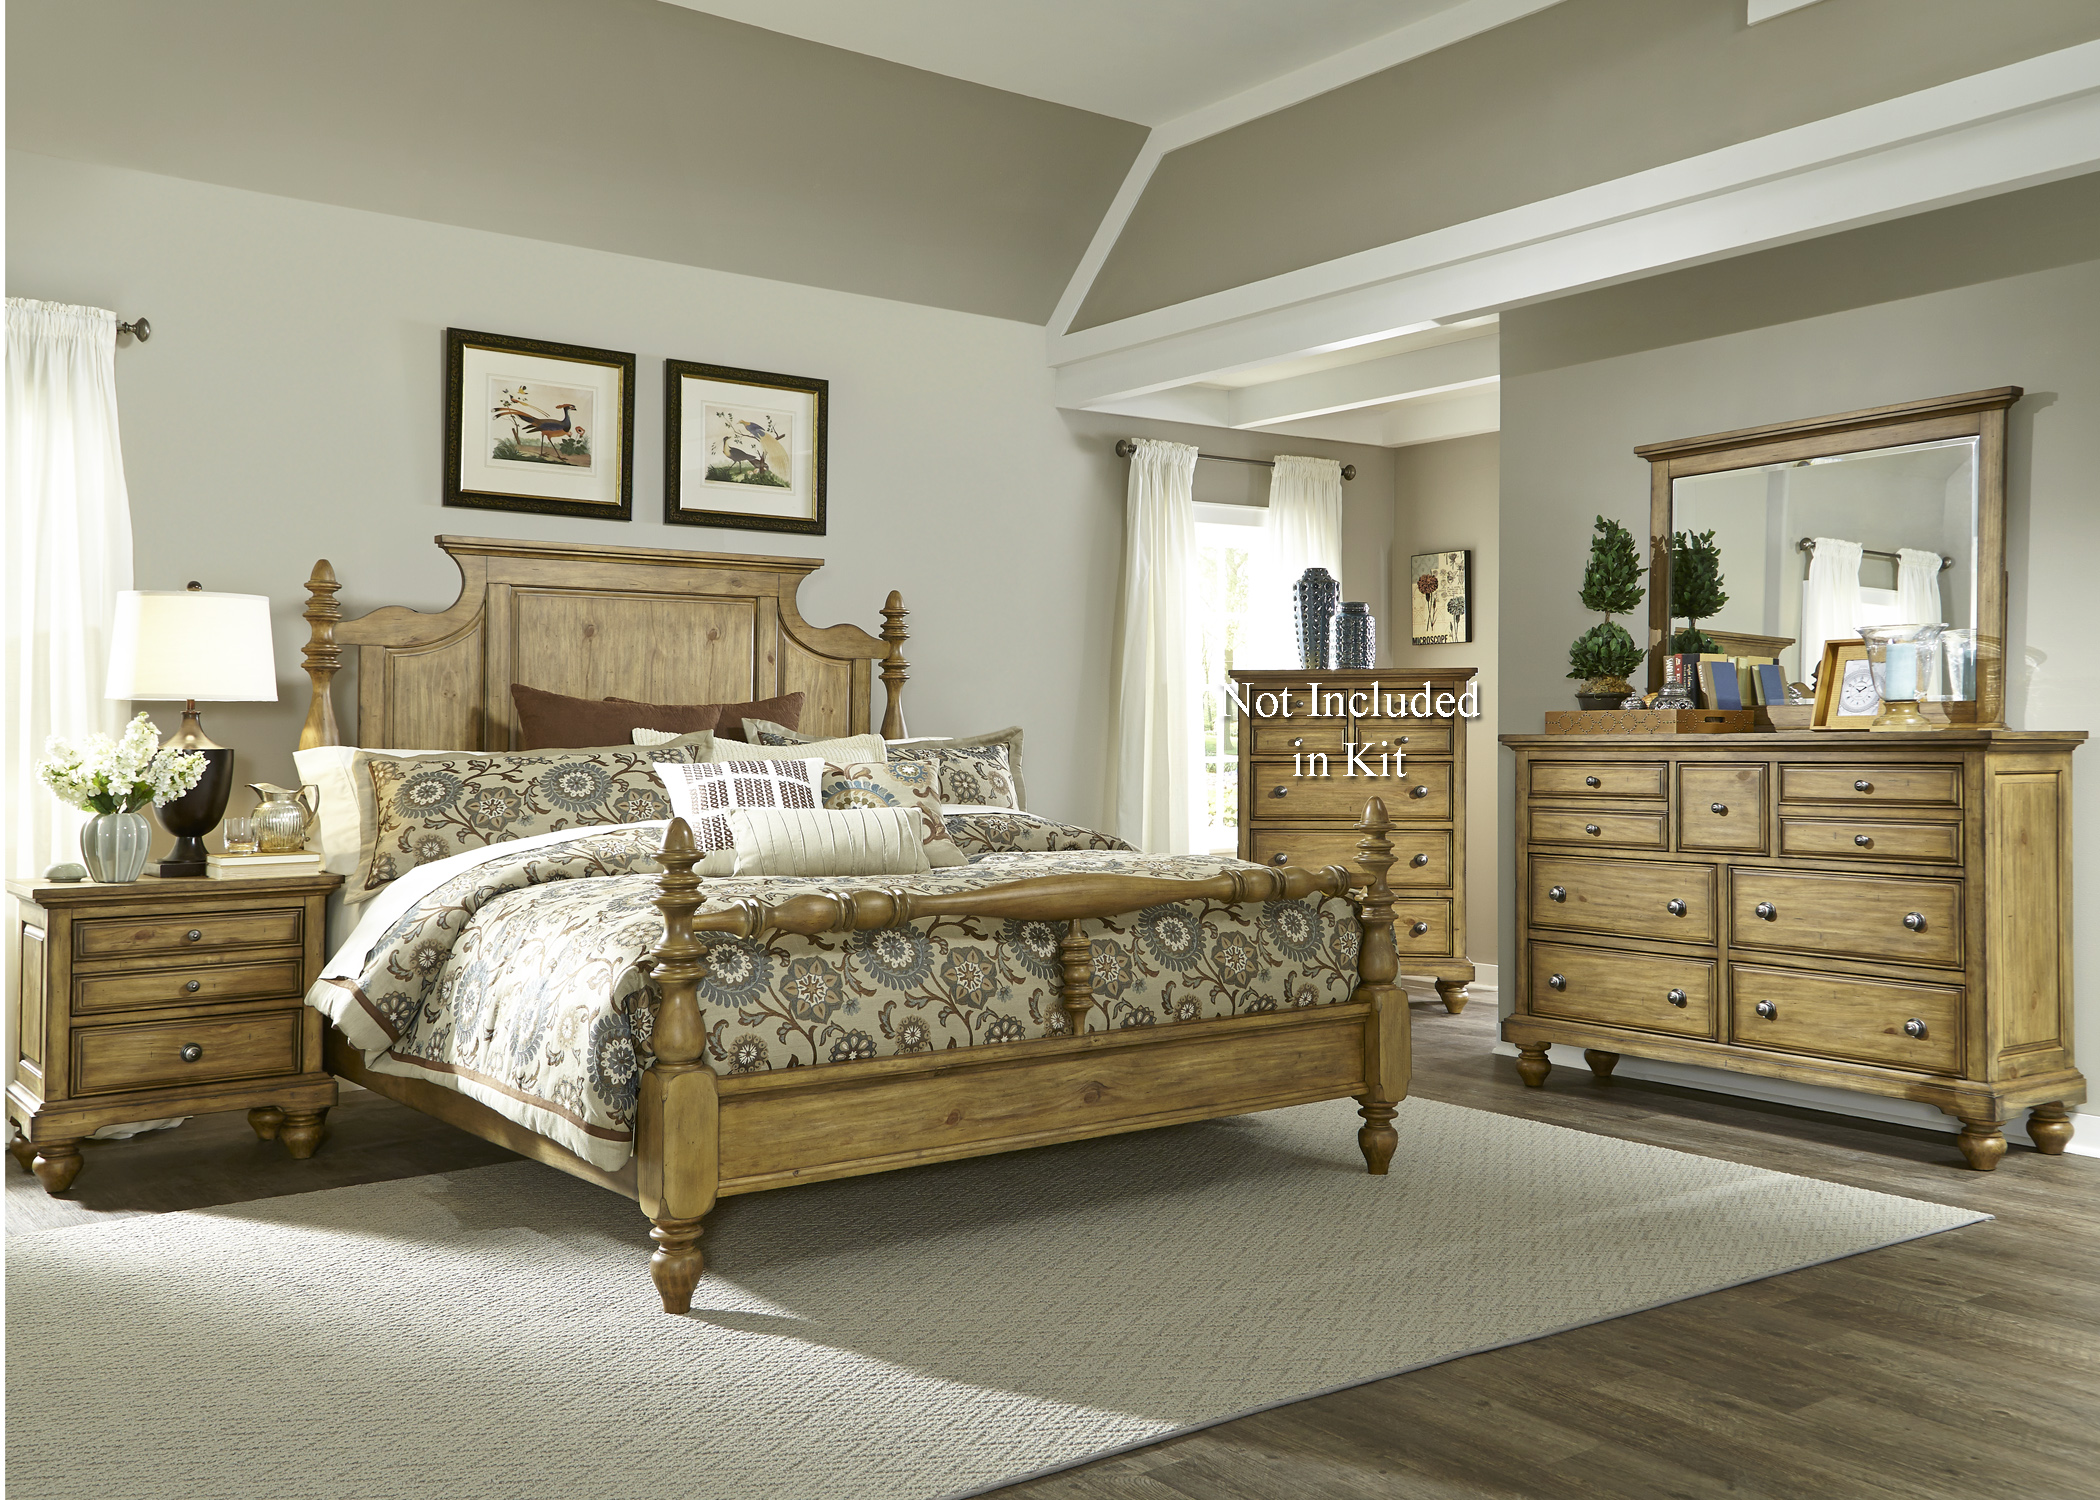 Liberty Furniture High Country King Bedroom Group - Item Number: 797-BR-KPSDMN